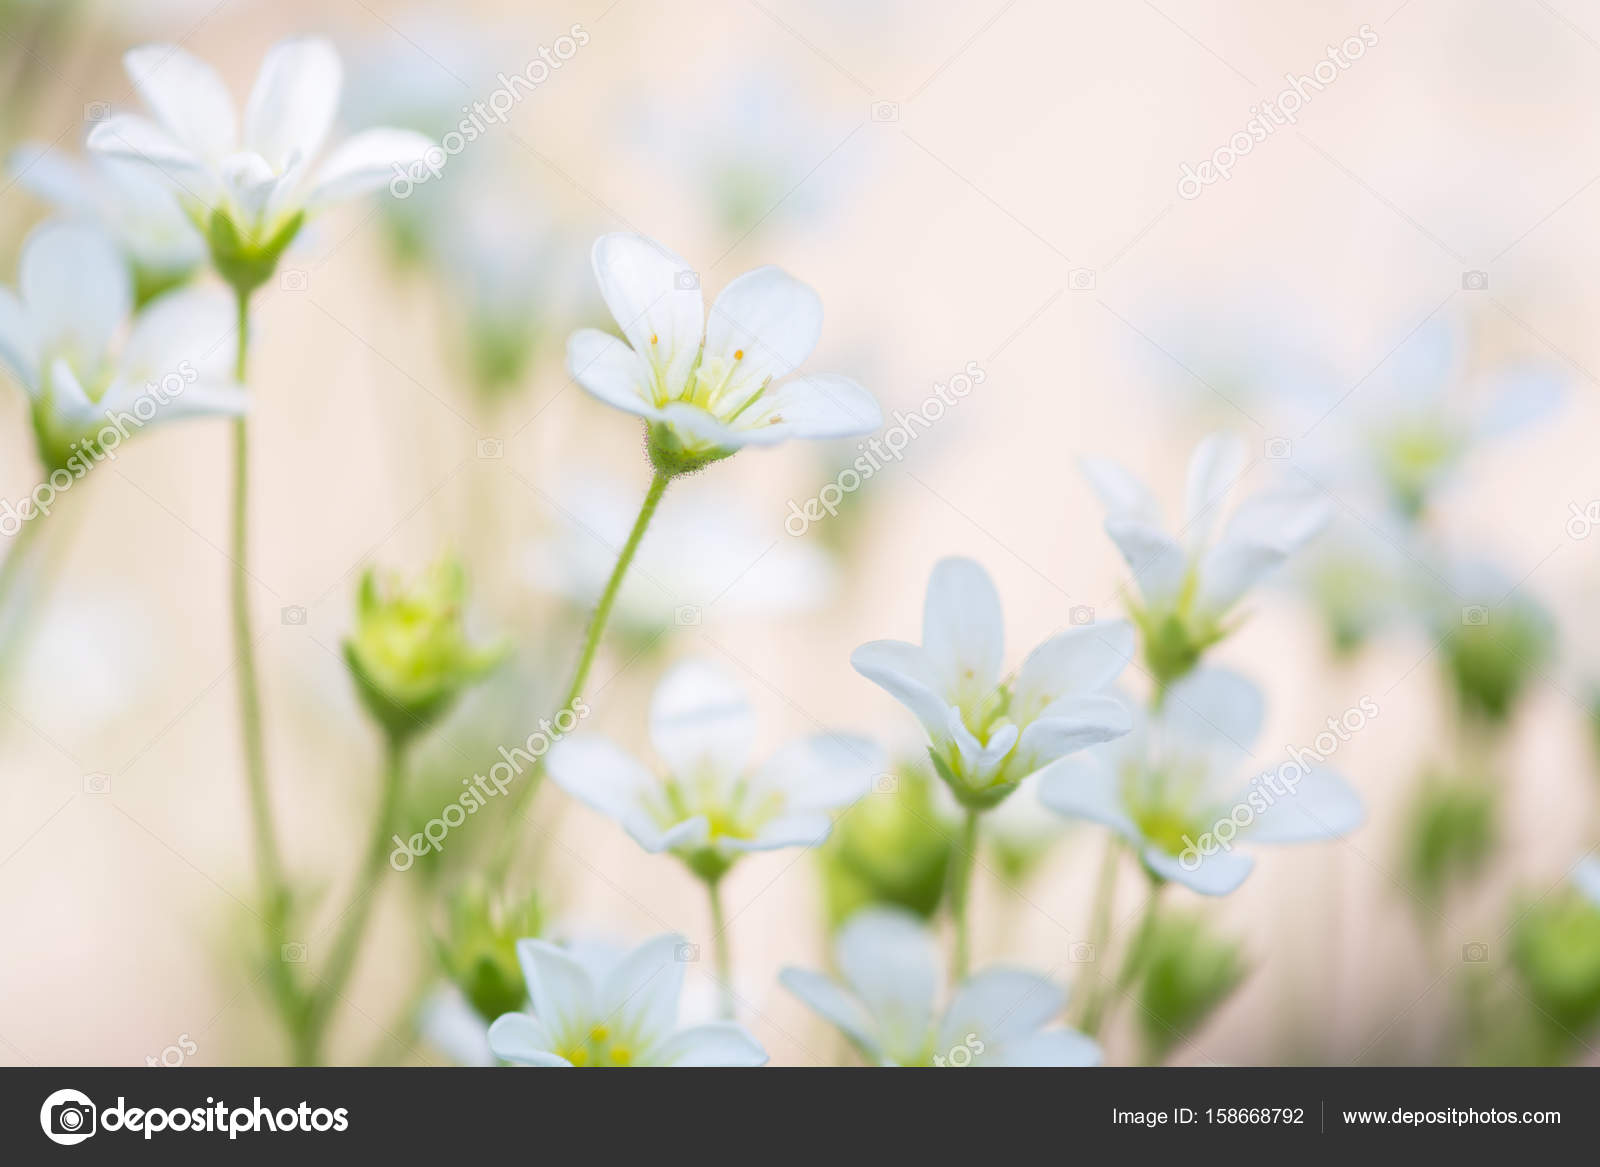 Small White Flowers On A Delicate Pink Background Artistic Image Of